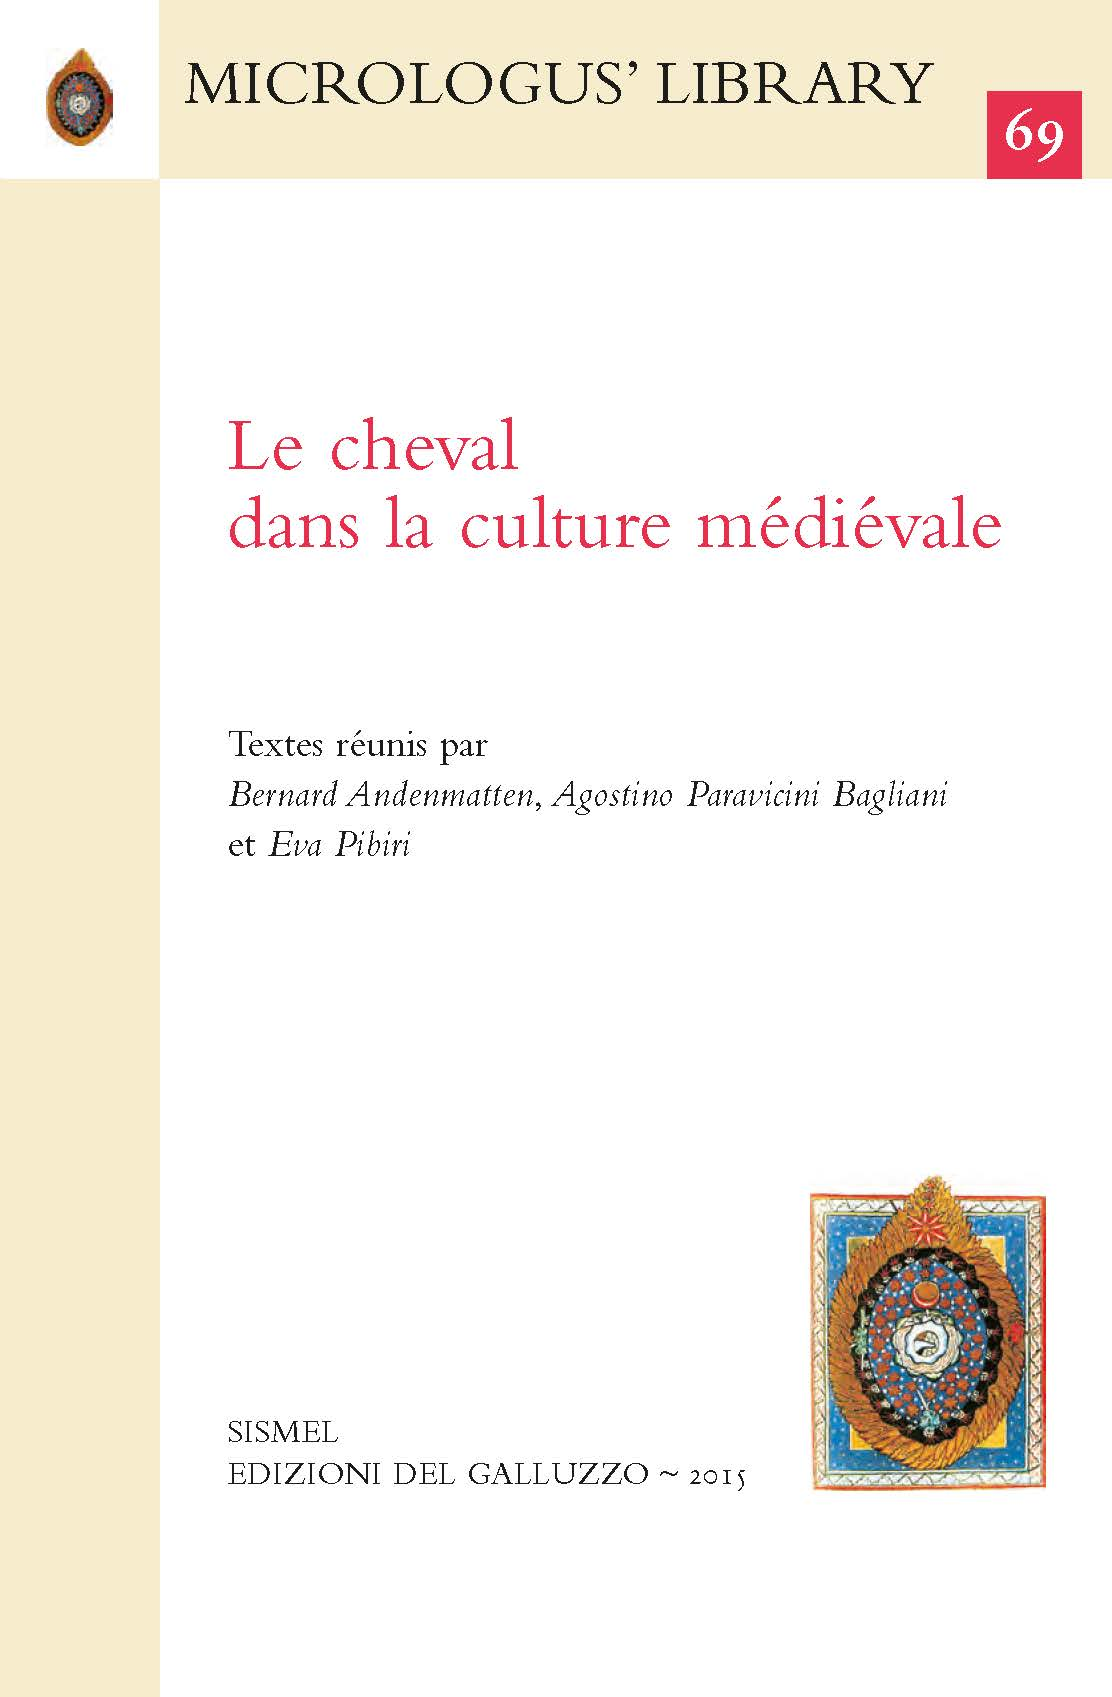 Pages de Le_cheval_dans_la_culture_medievale.jpeg